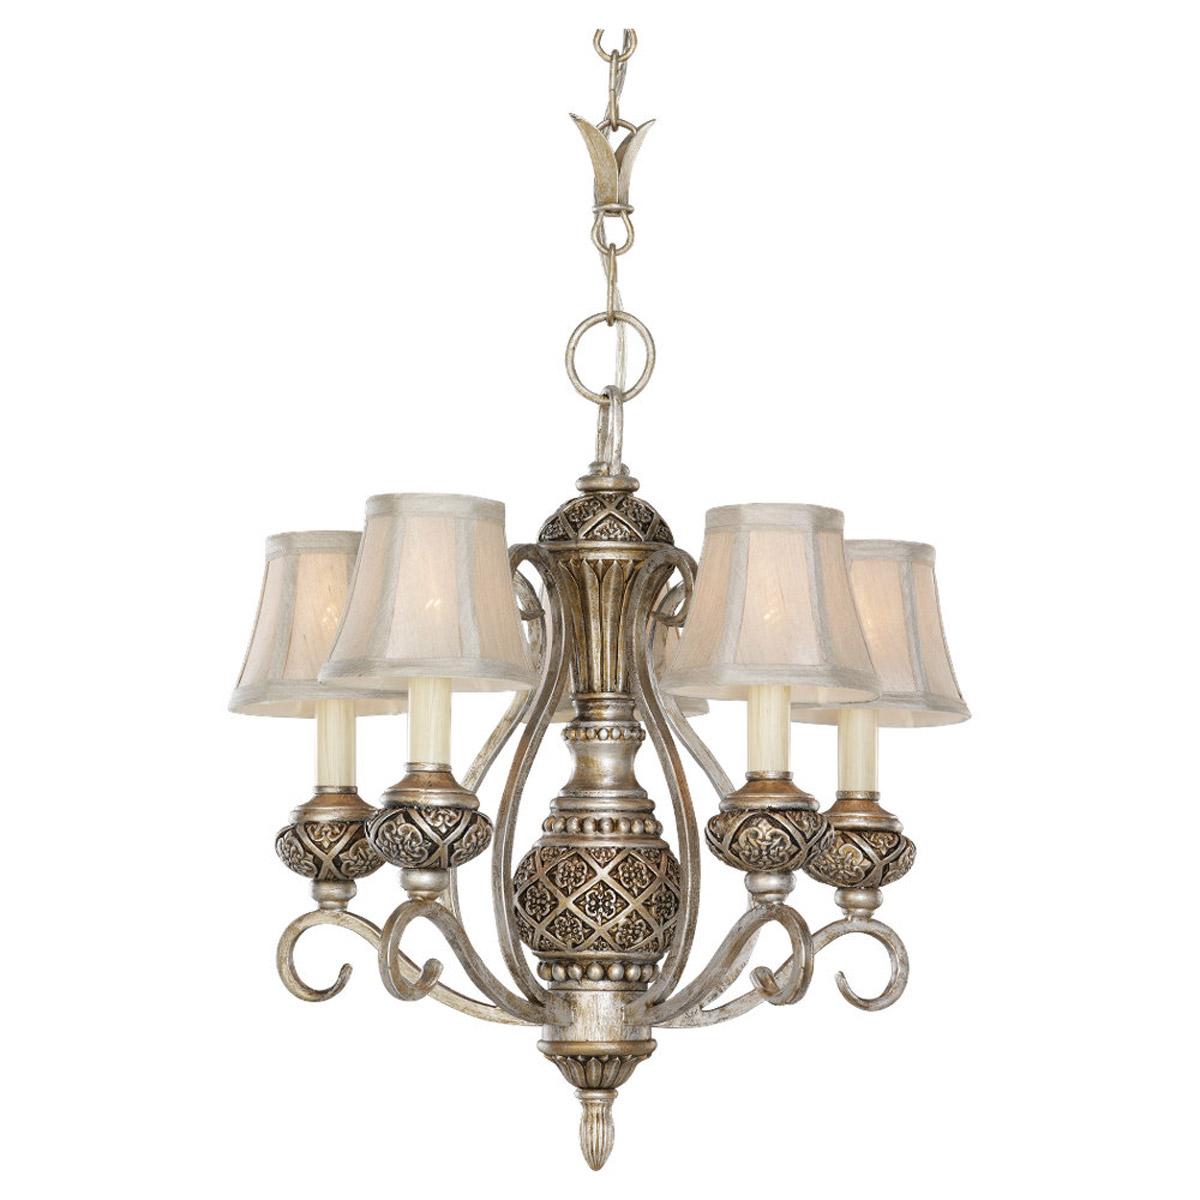 Sea Gull Lighting Highlands 5 Light Chandelier in Palladium 30251-824 photo